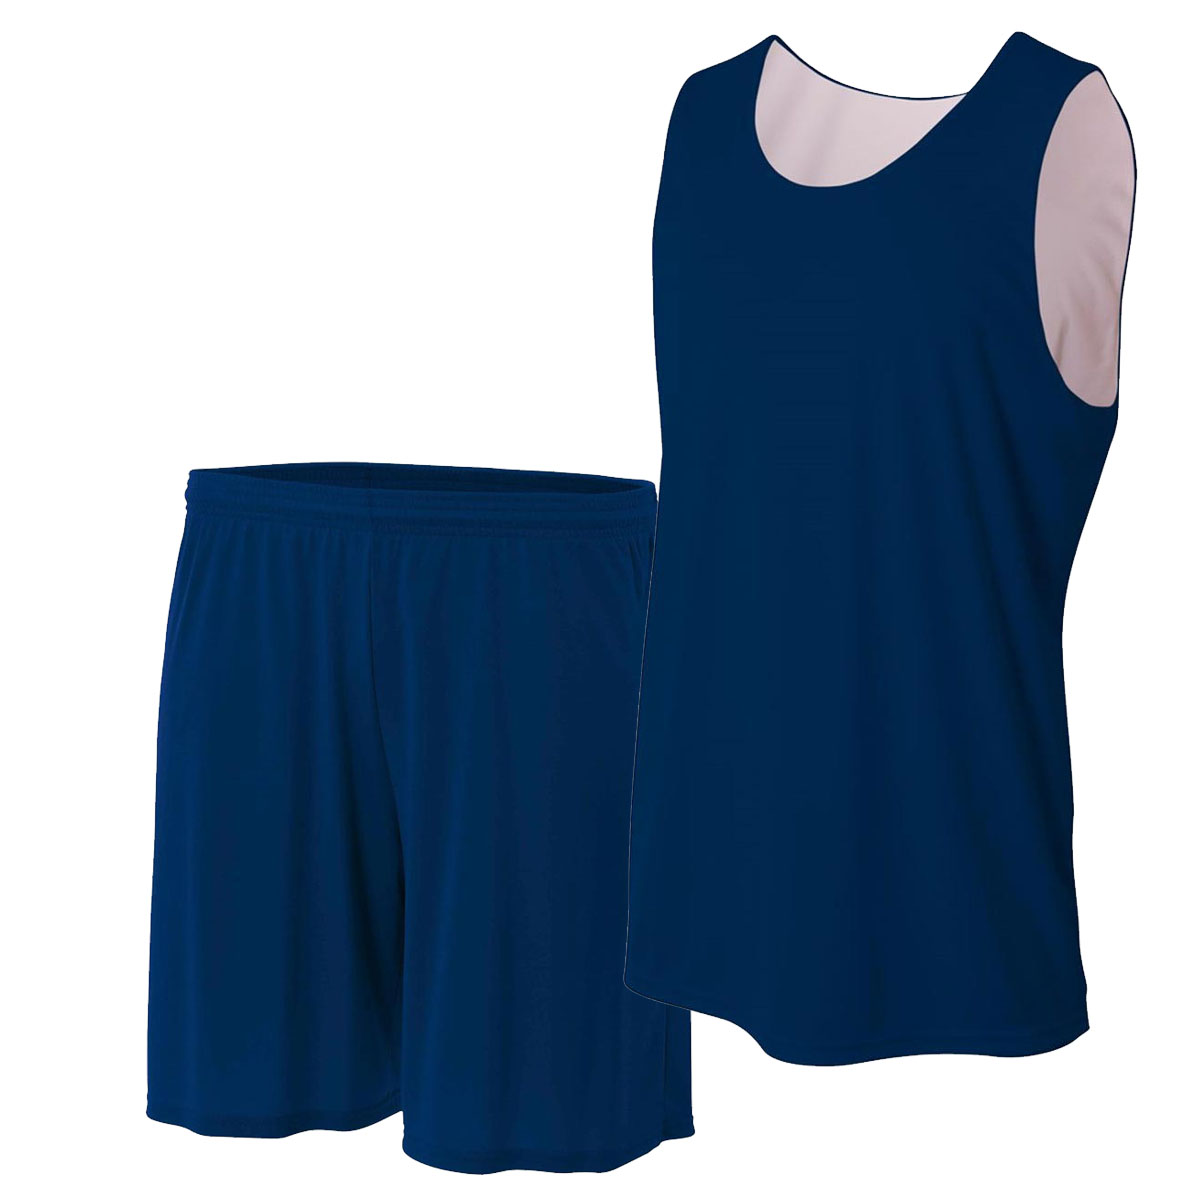 Reversible Basketball Uniforms Manufacturers in Siliguri